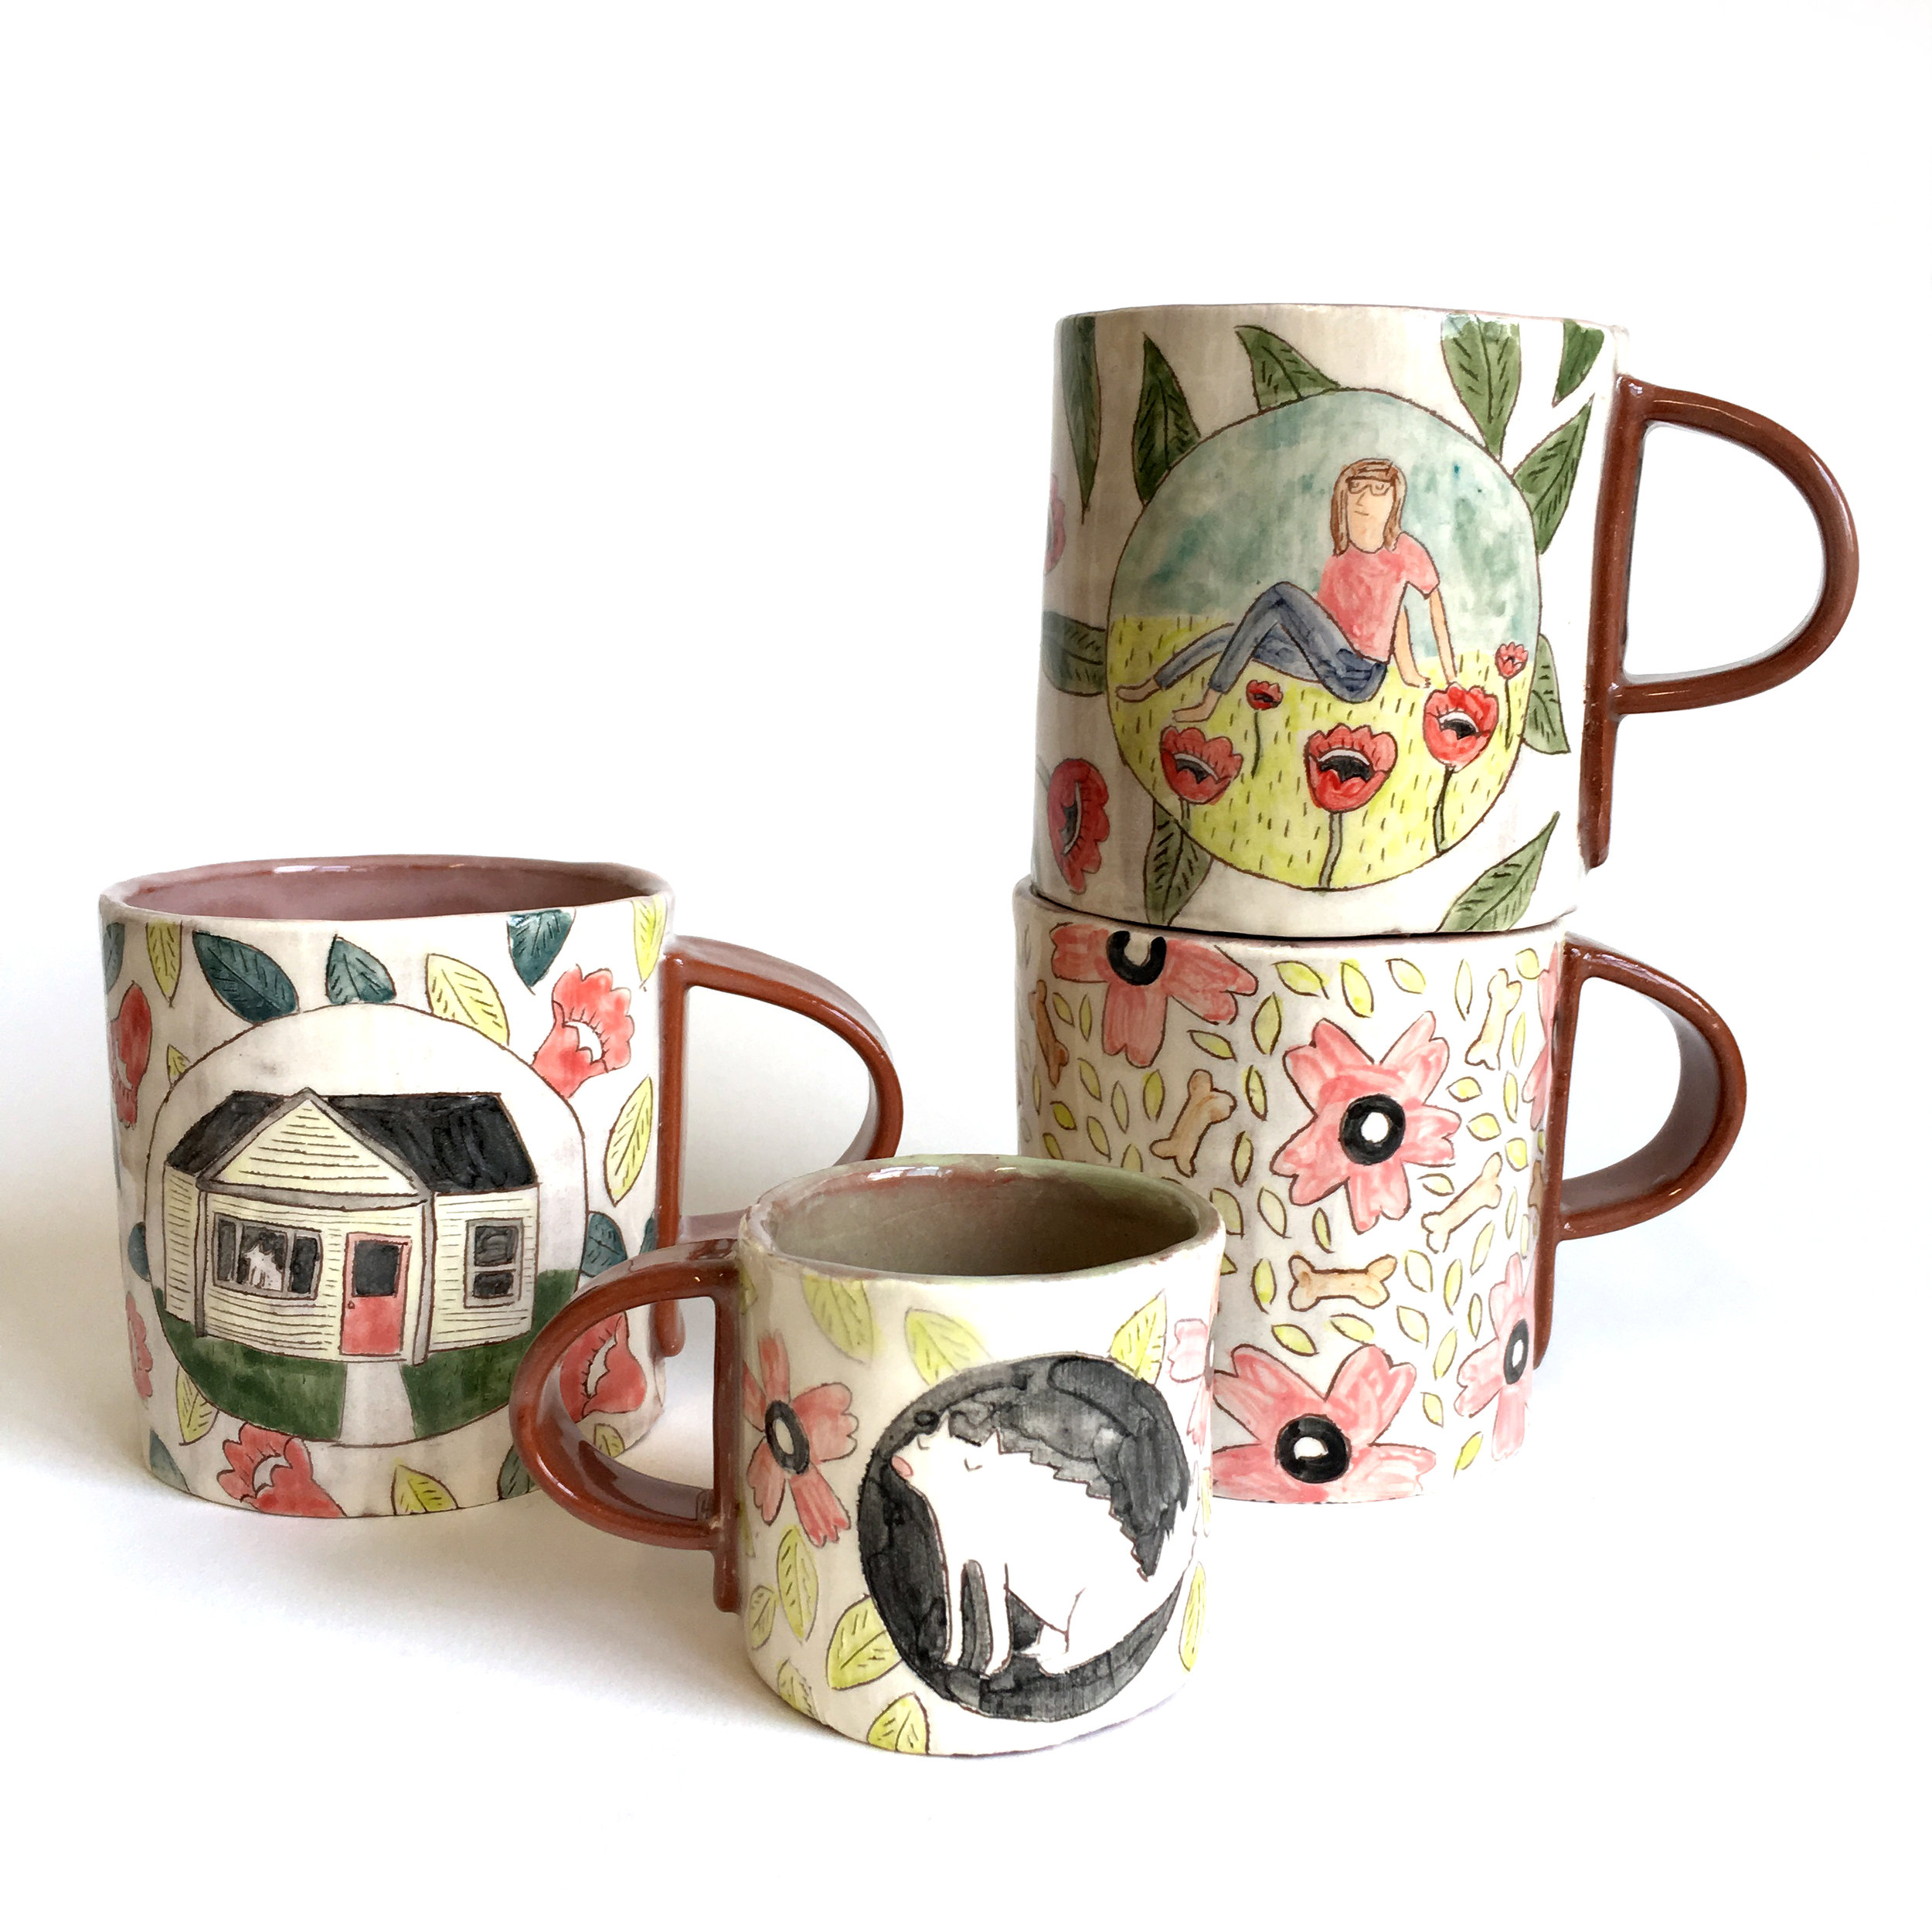 - I worked with a client to create this special mug set with his girlfriend, her dog, and her home with a red door.